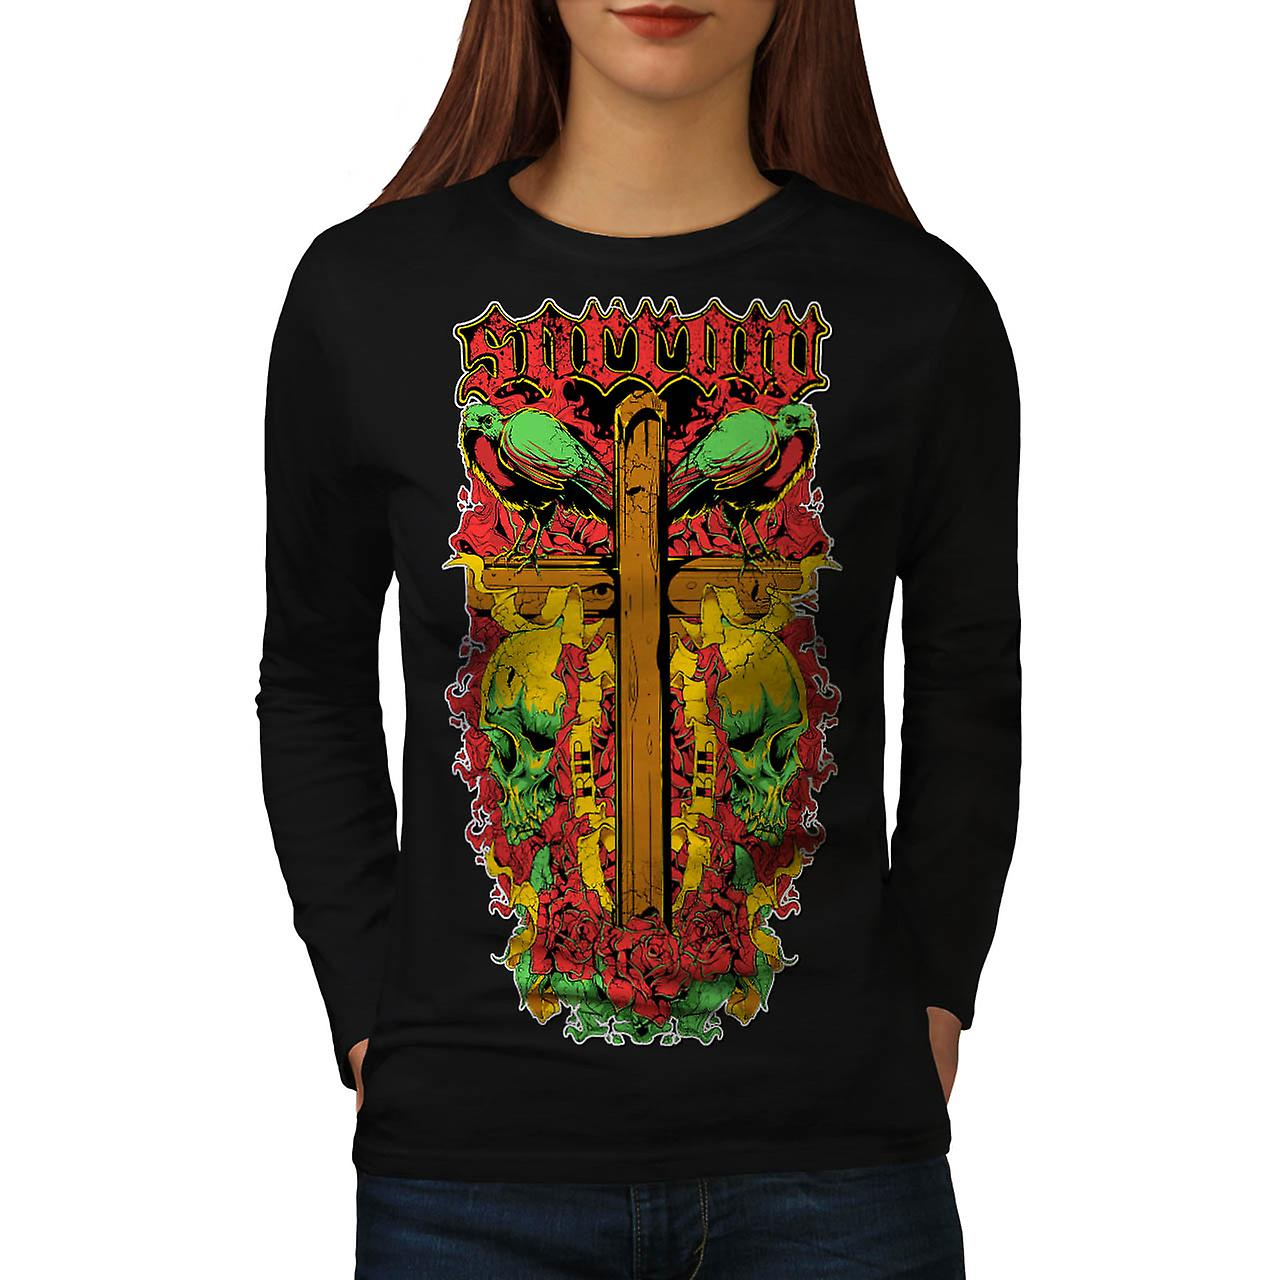 Die Sorrow Grave Yard Tomb Stone Women Black Long Sleeve T-shirt | Wellcoda